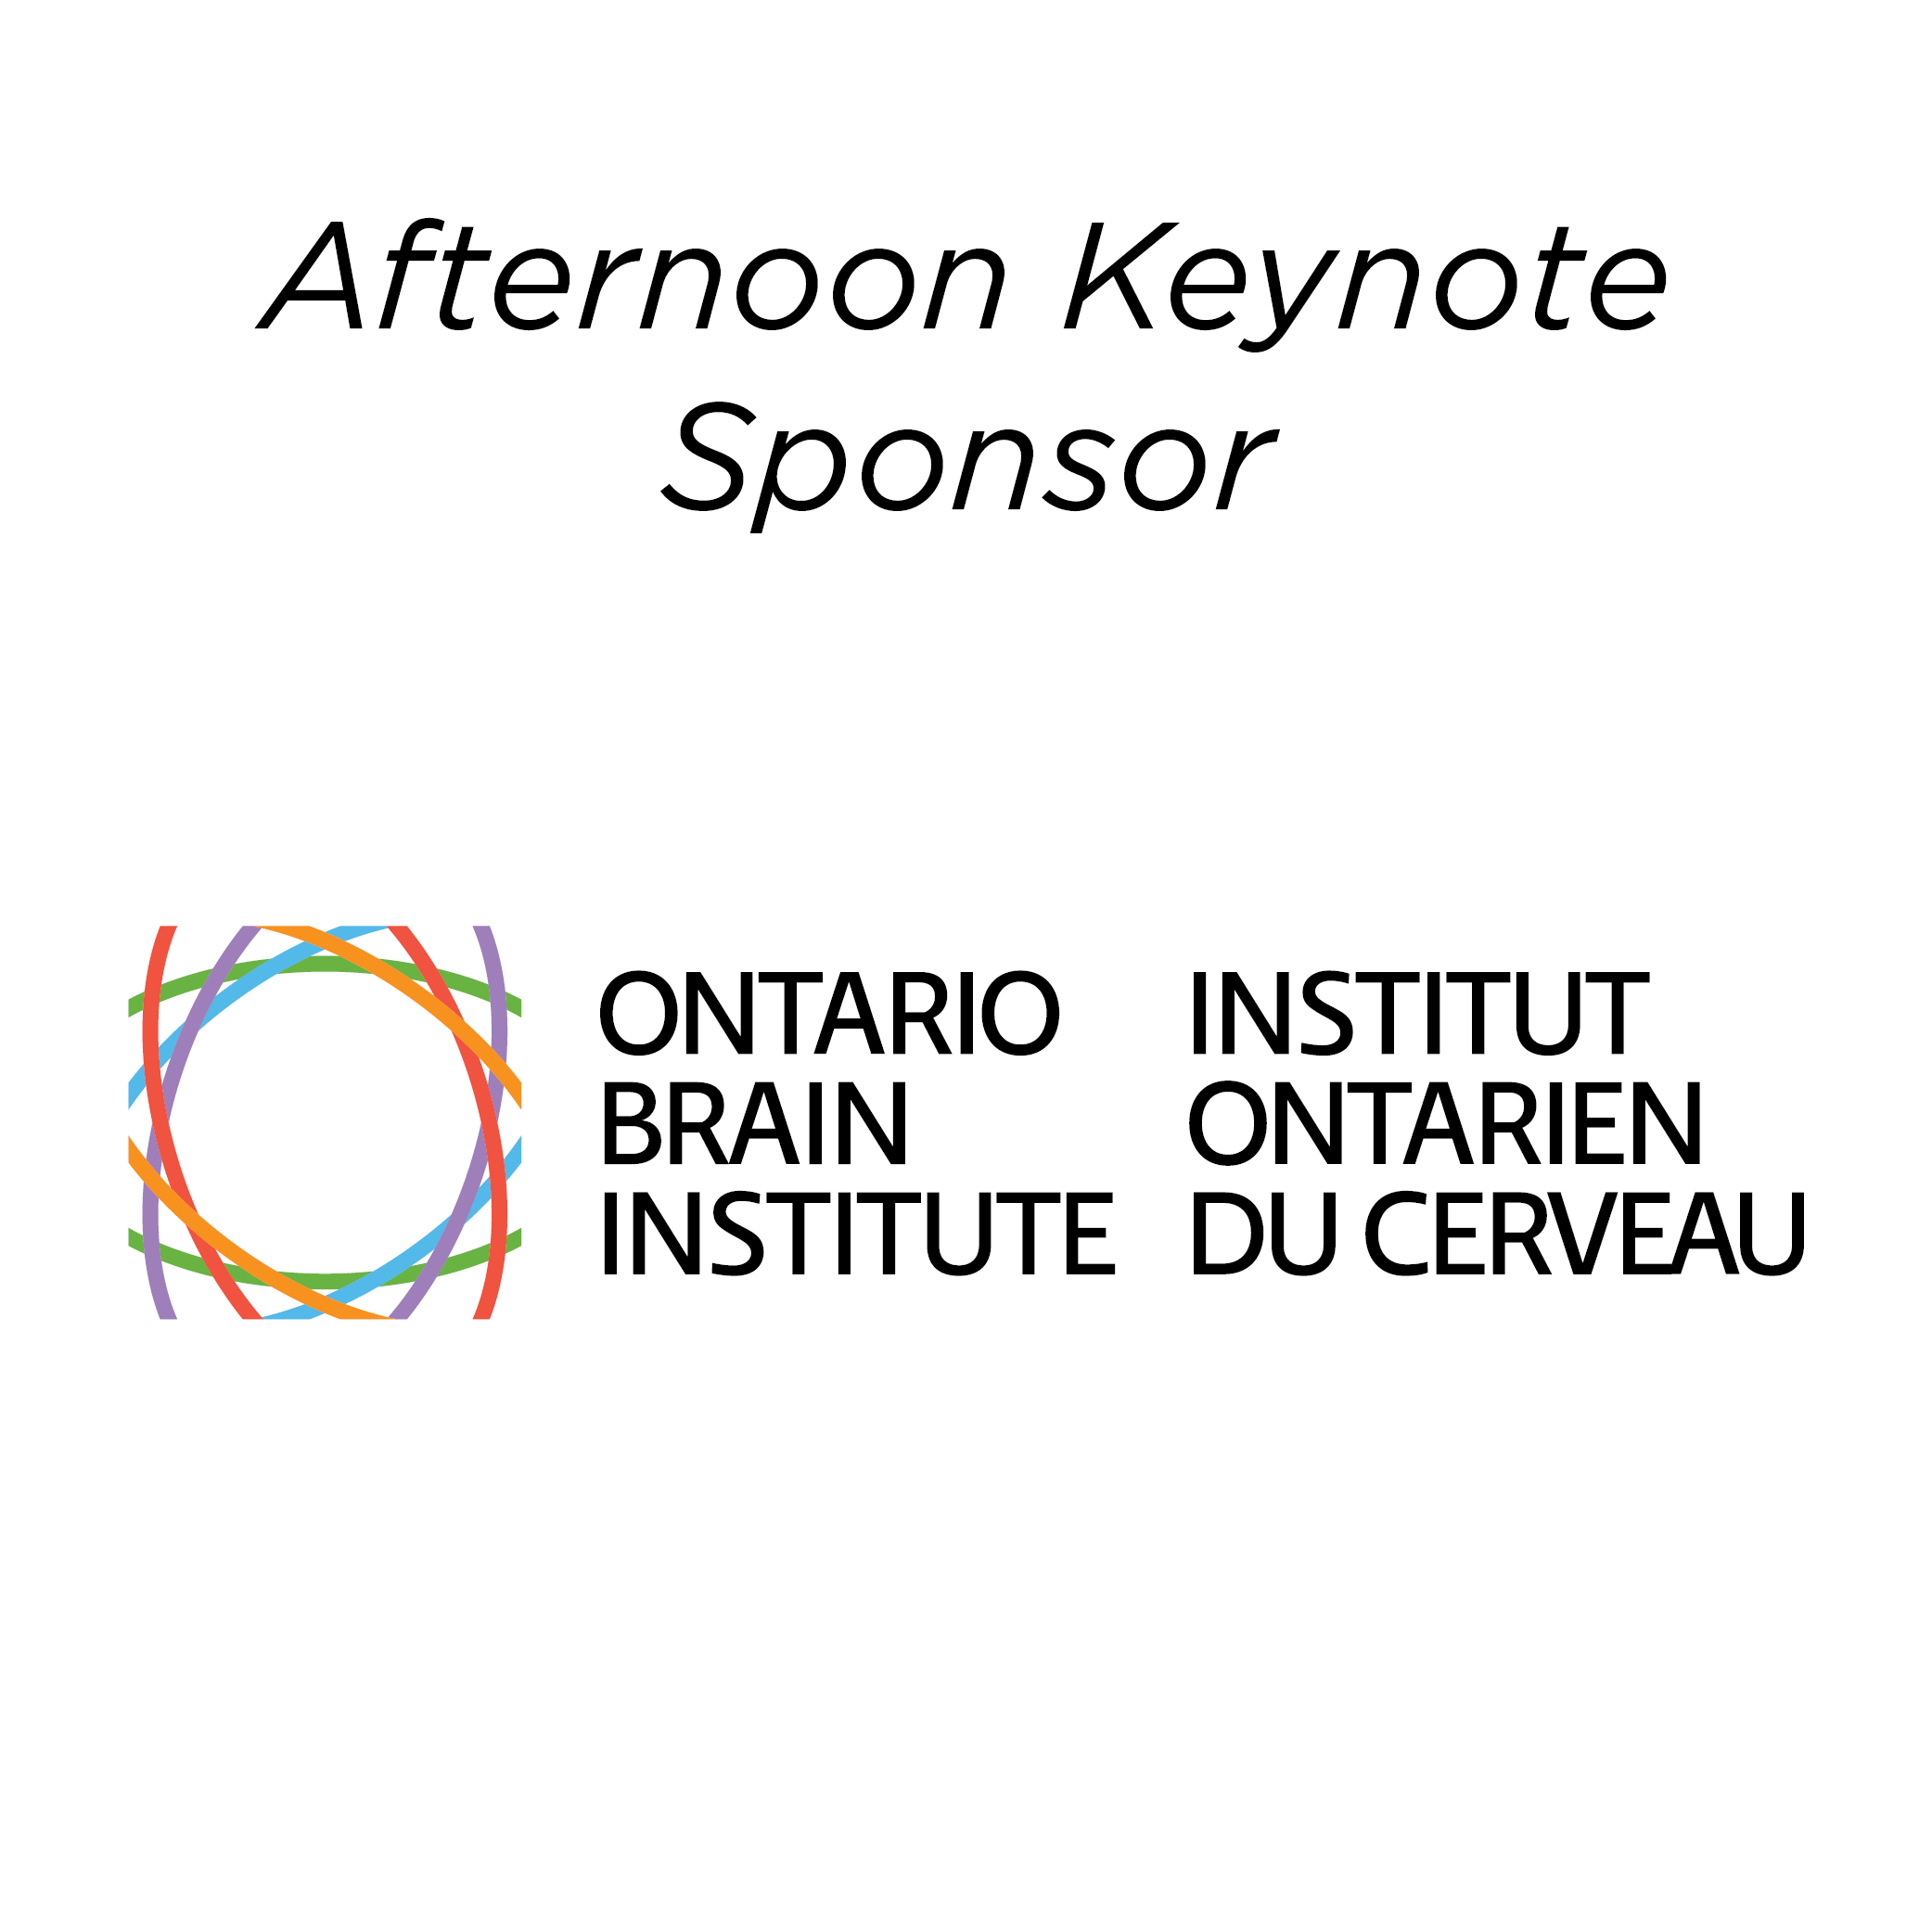 Ontario Brain Institute - Afternoon Keynote Sponsor